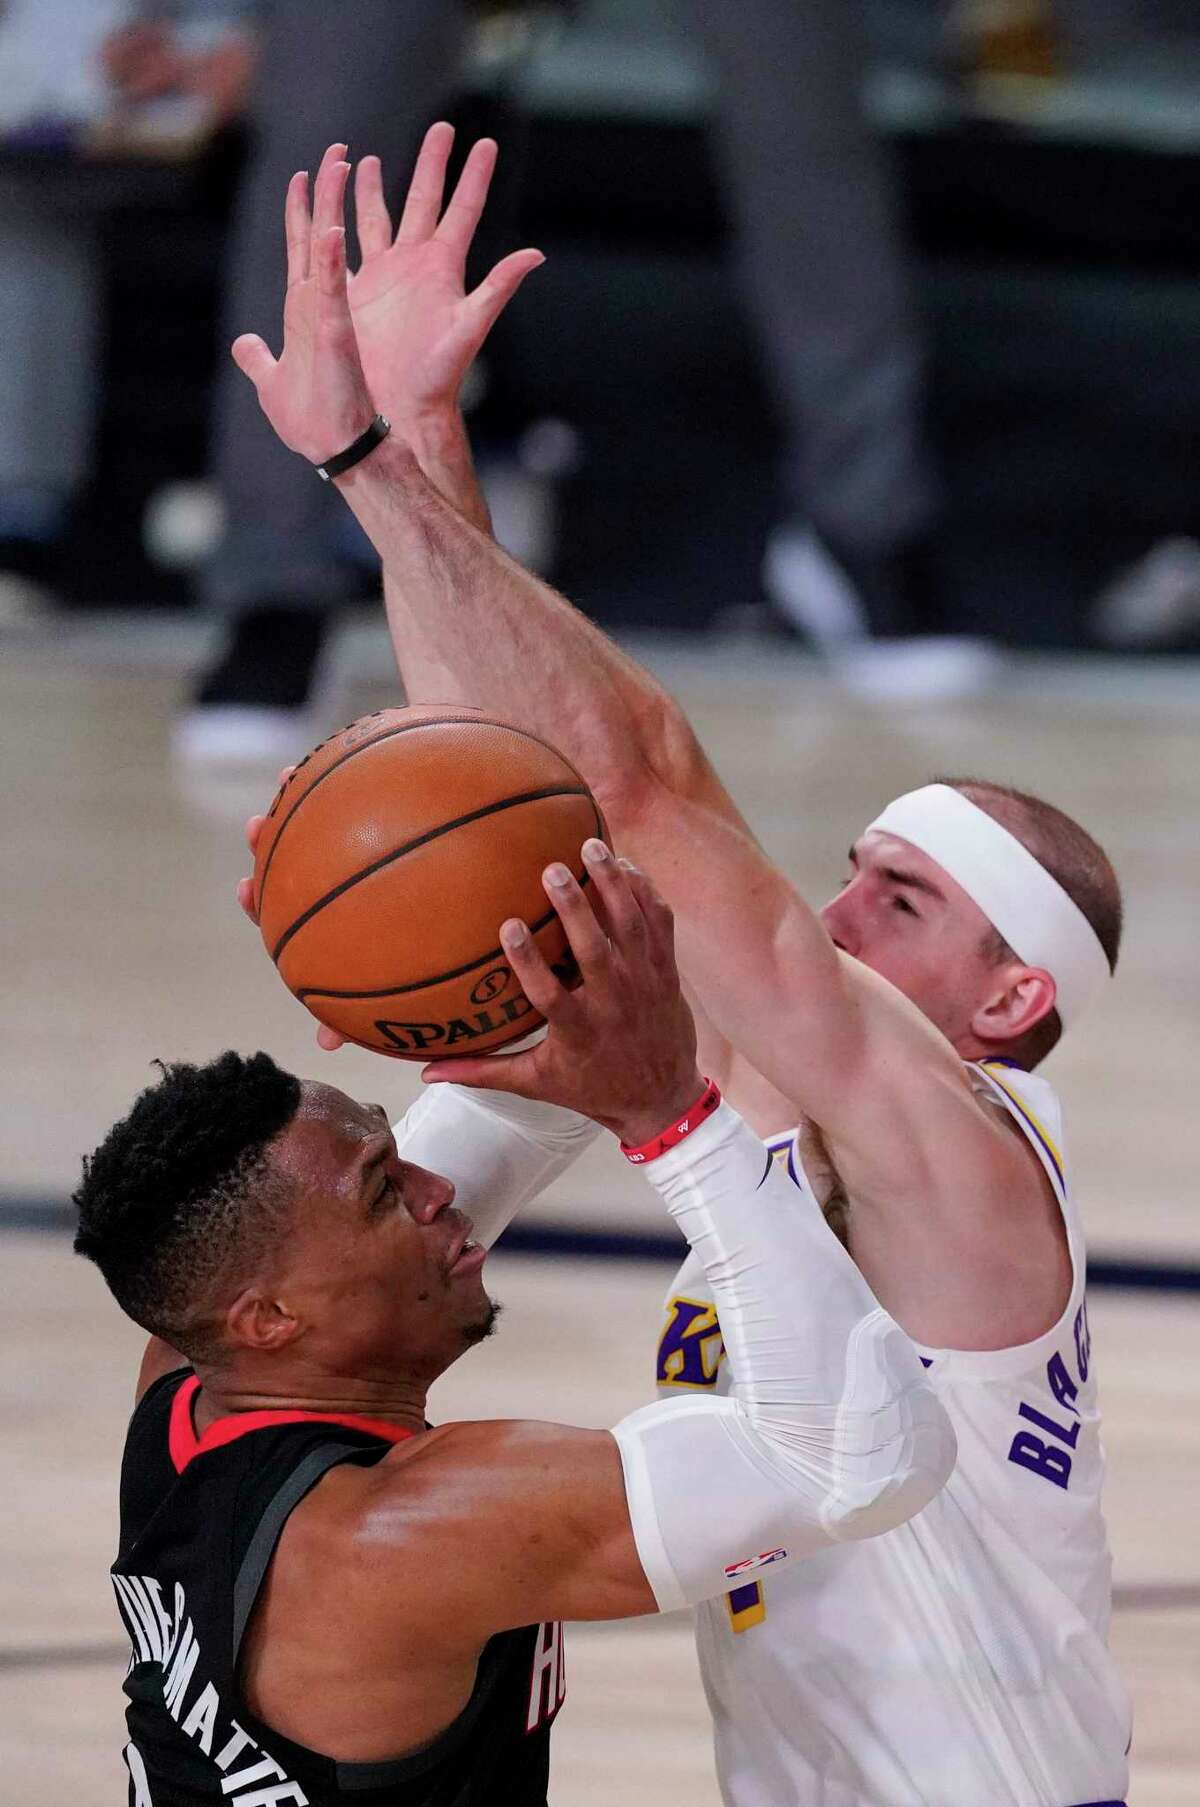 Los Angeles Lakers' Alex Caruso, right, tries to block a shot by Houston Rockets' Russell Westbrook, left, during the second half of an NBA conference semifinal playoff basketball game Tuesday, Sept. 8, 2020, in Lake Buena Vista, Fla. (AP Photo/Mark J. Terrill)